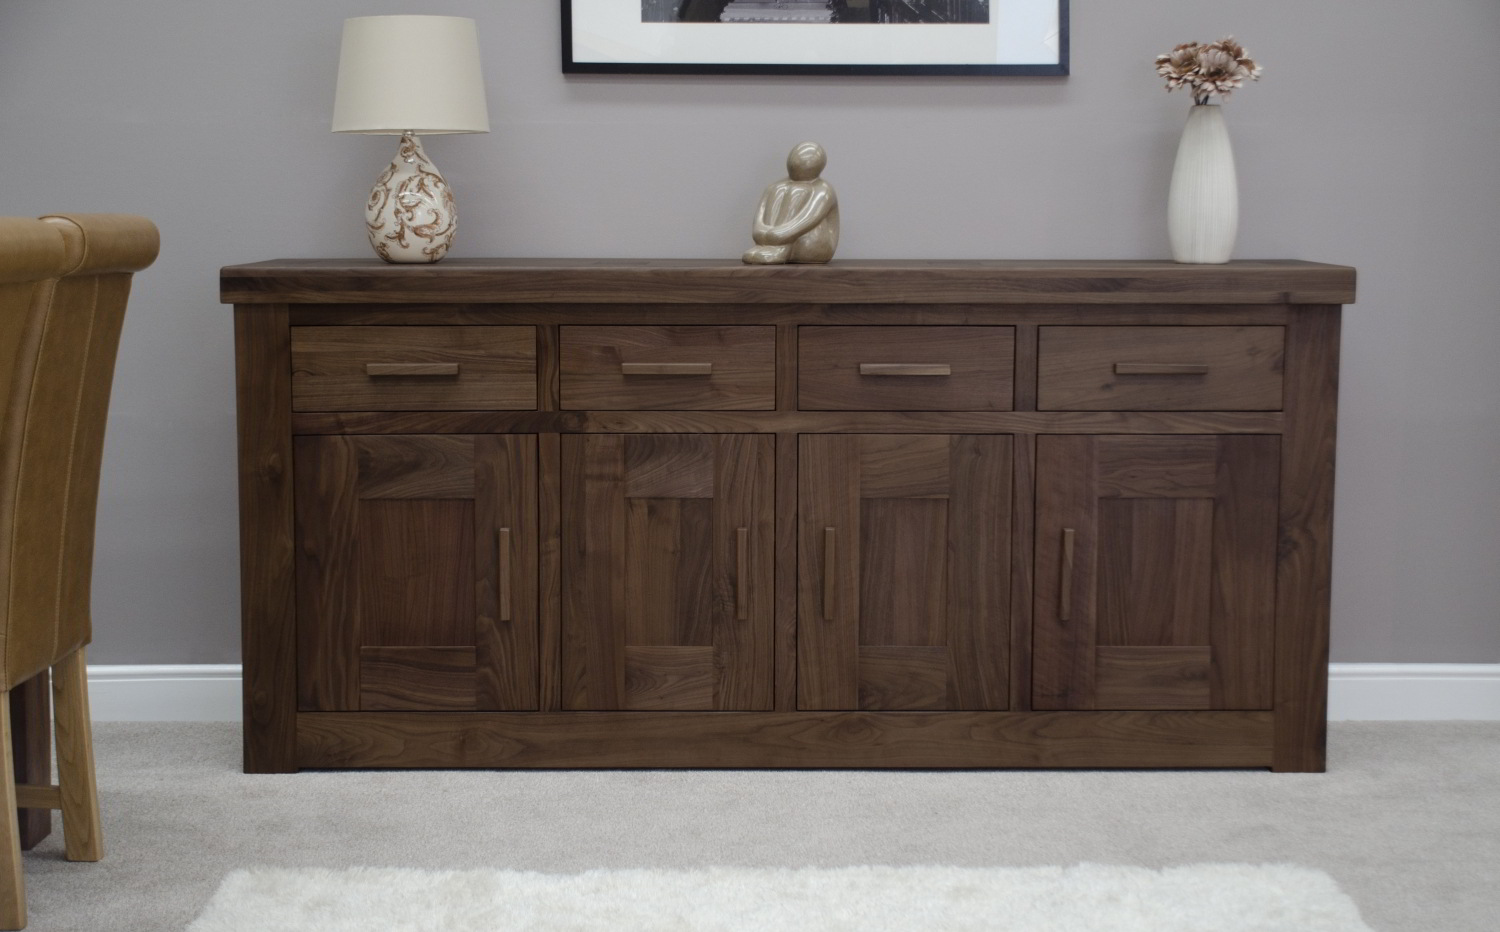 Kendo Solid Walnut Living Dining Room Furniture Extra Large Grand Sideboard